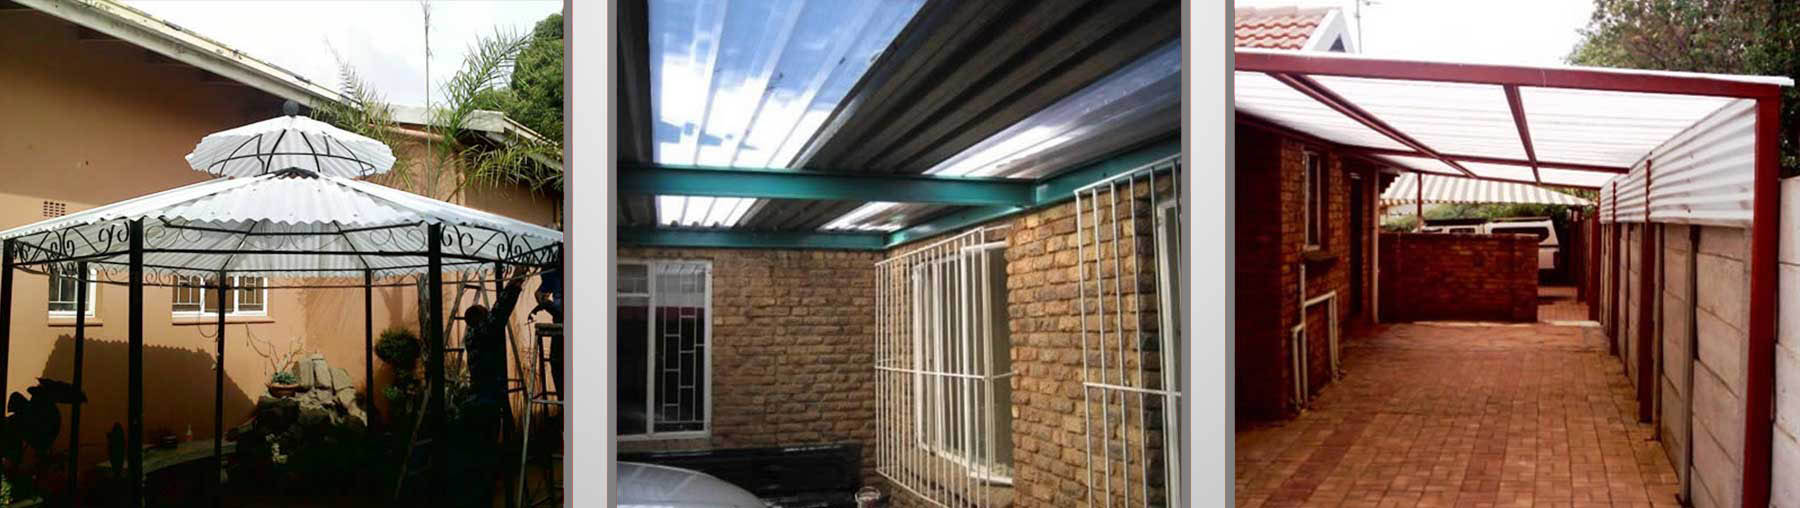 Chromadek Roof Sheeting Sheeting Direct